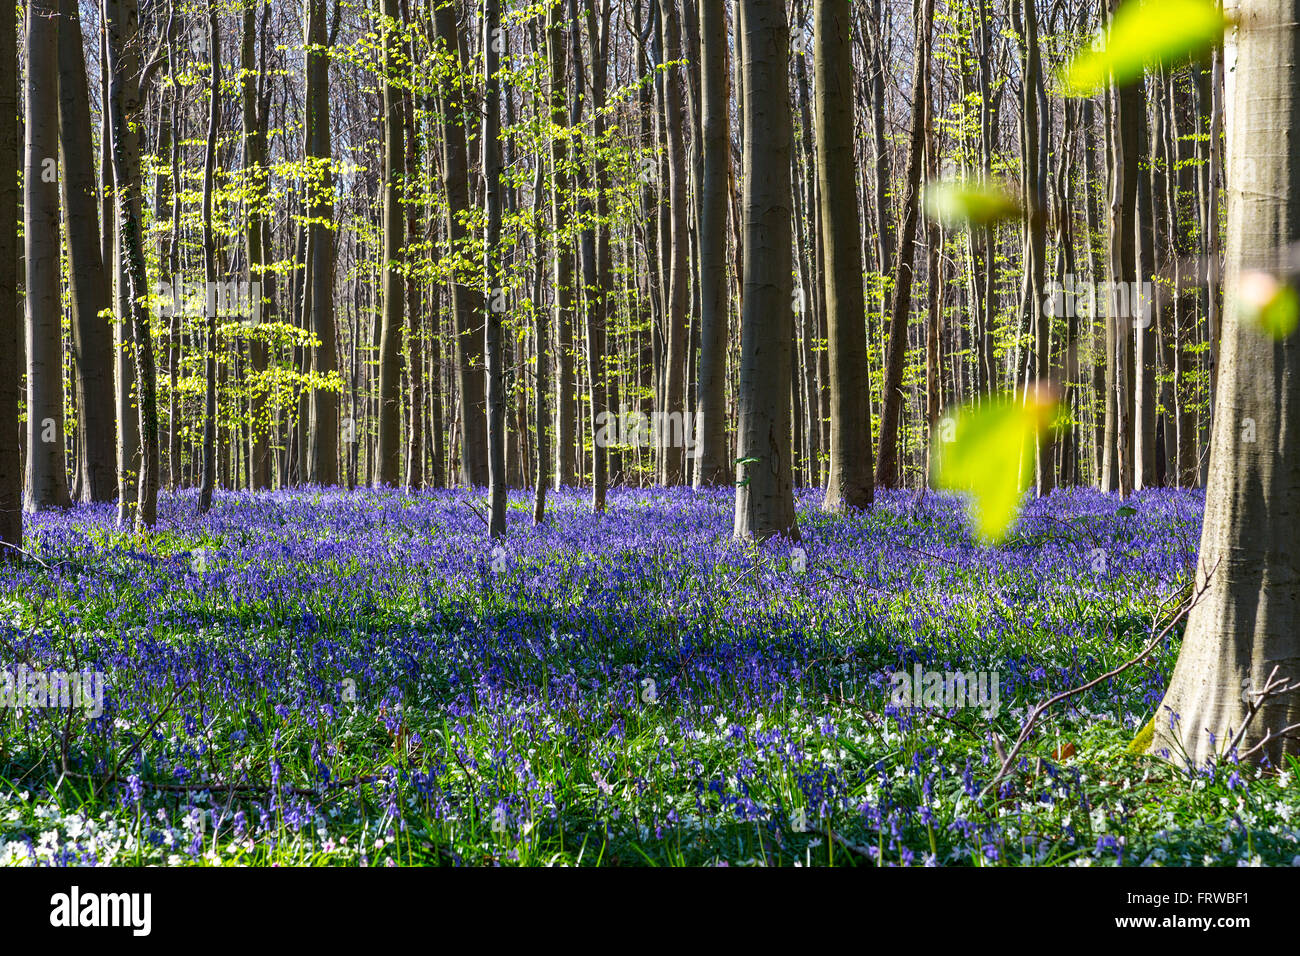 Bluebells, Tranendal (vallée de larme) en Belgique, Eikendreef Photo Stock